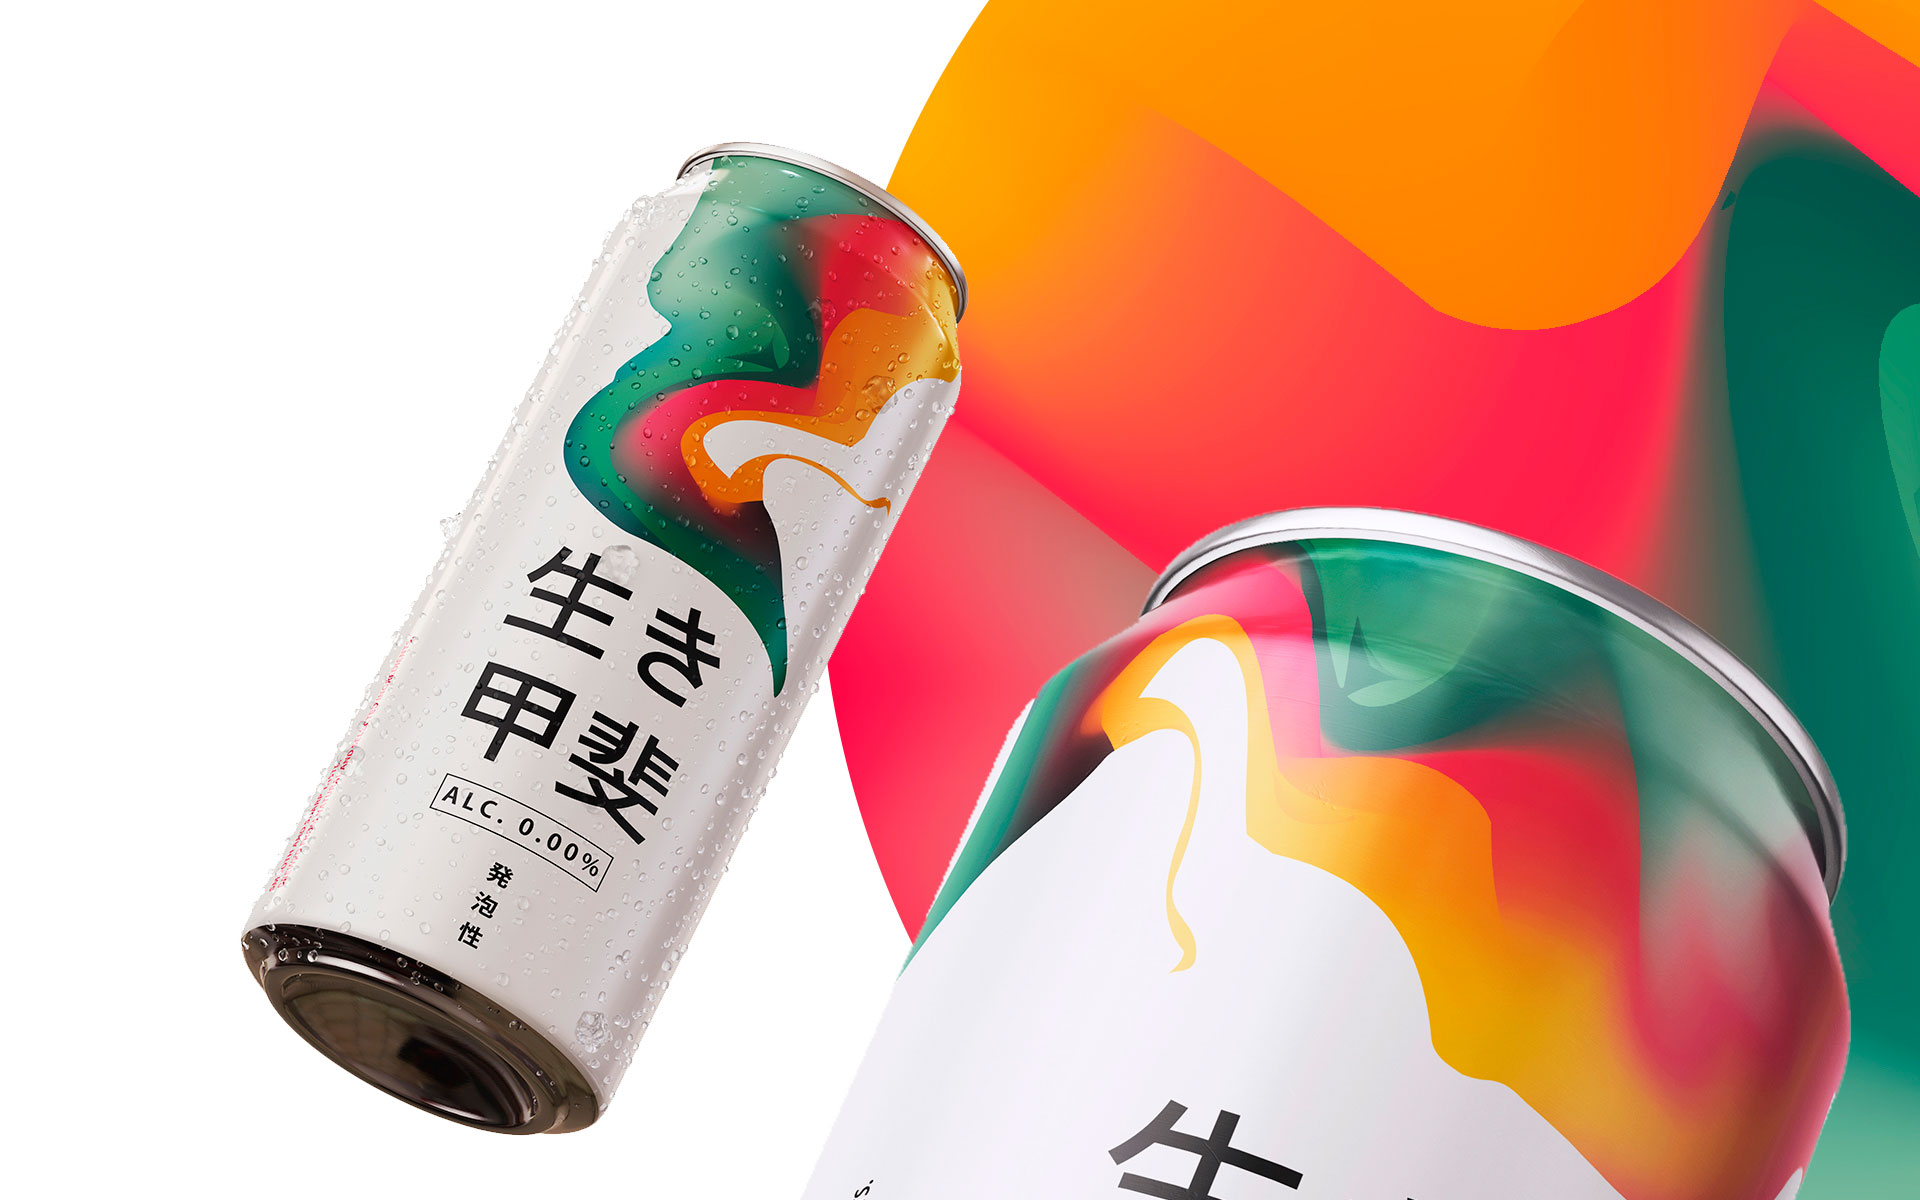 Creation of Japanese beer cans